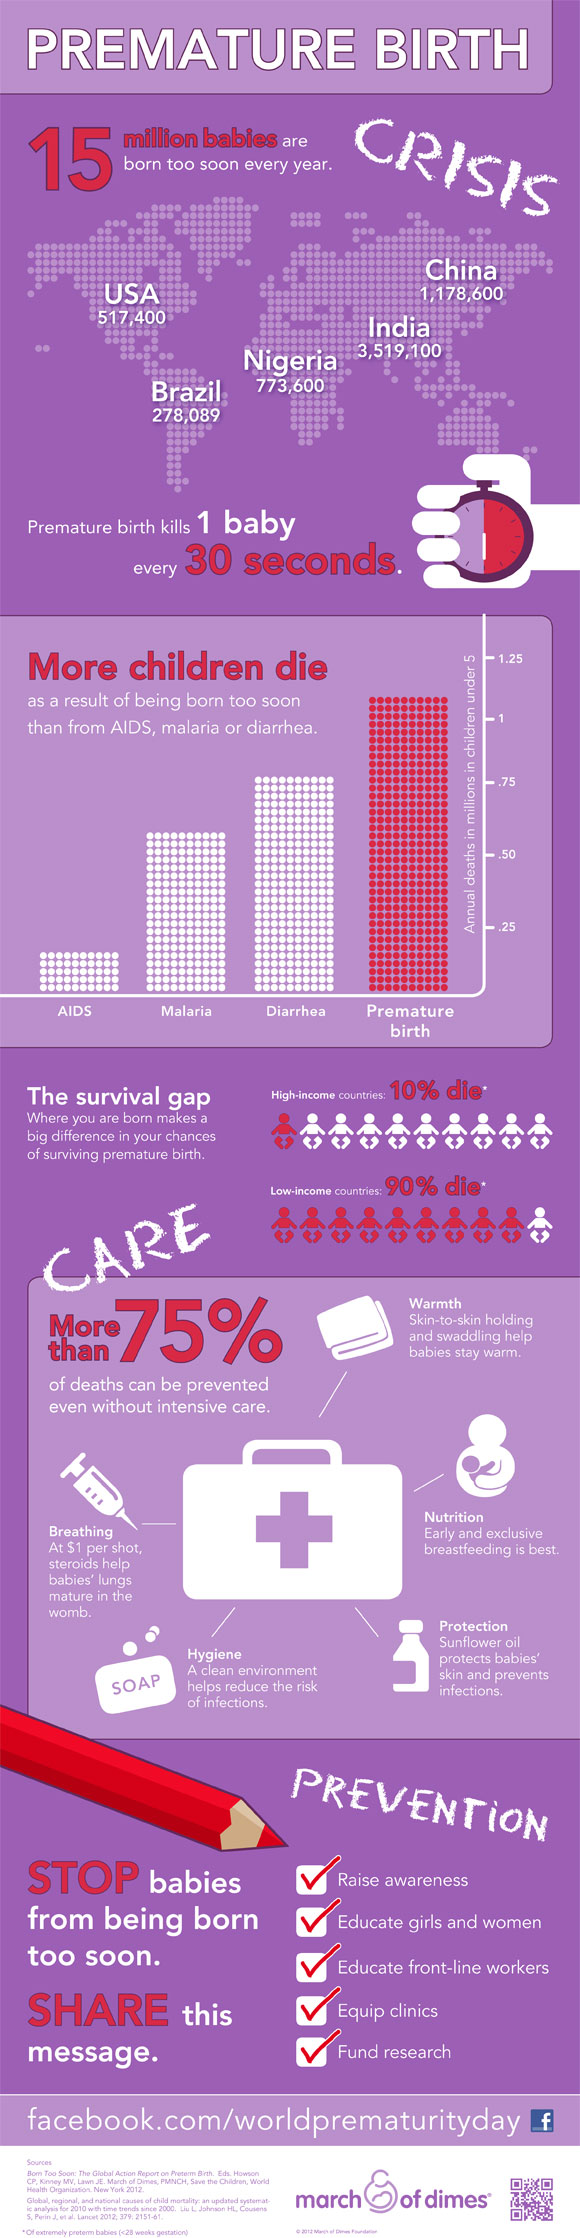 March of Dimes Childbirth Facts